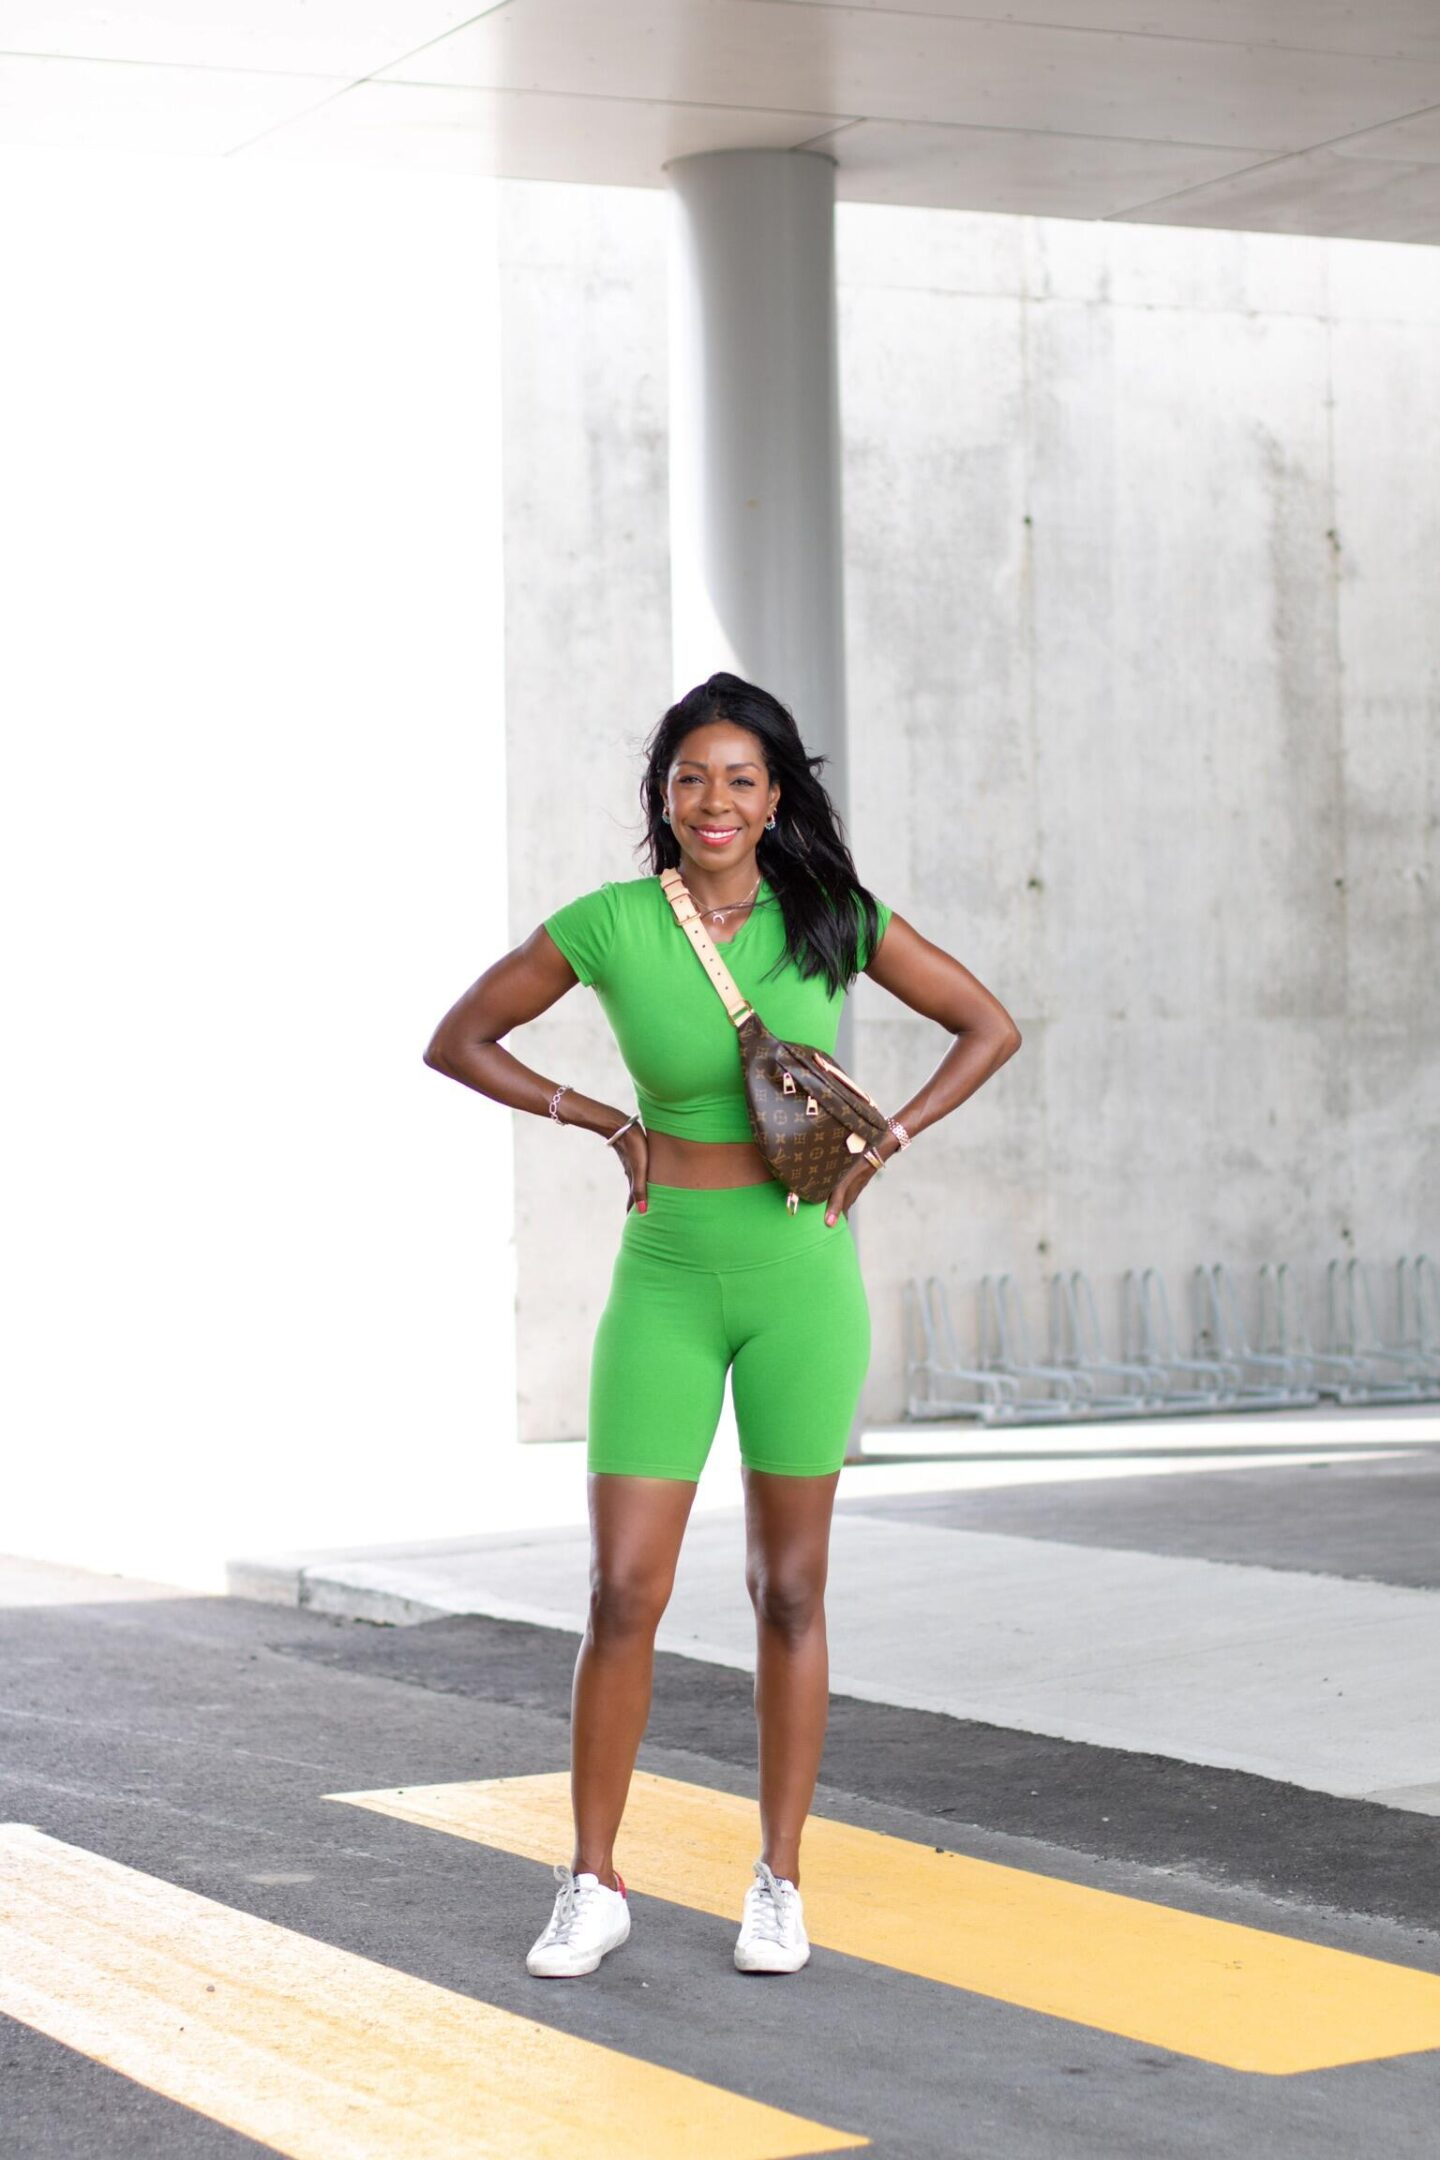 Dominique Baker in Green outfit with Louis Vuitton Bumbag